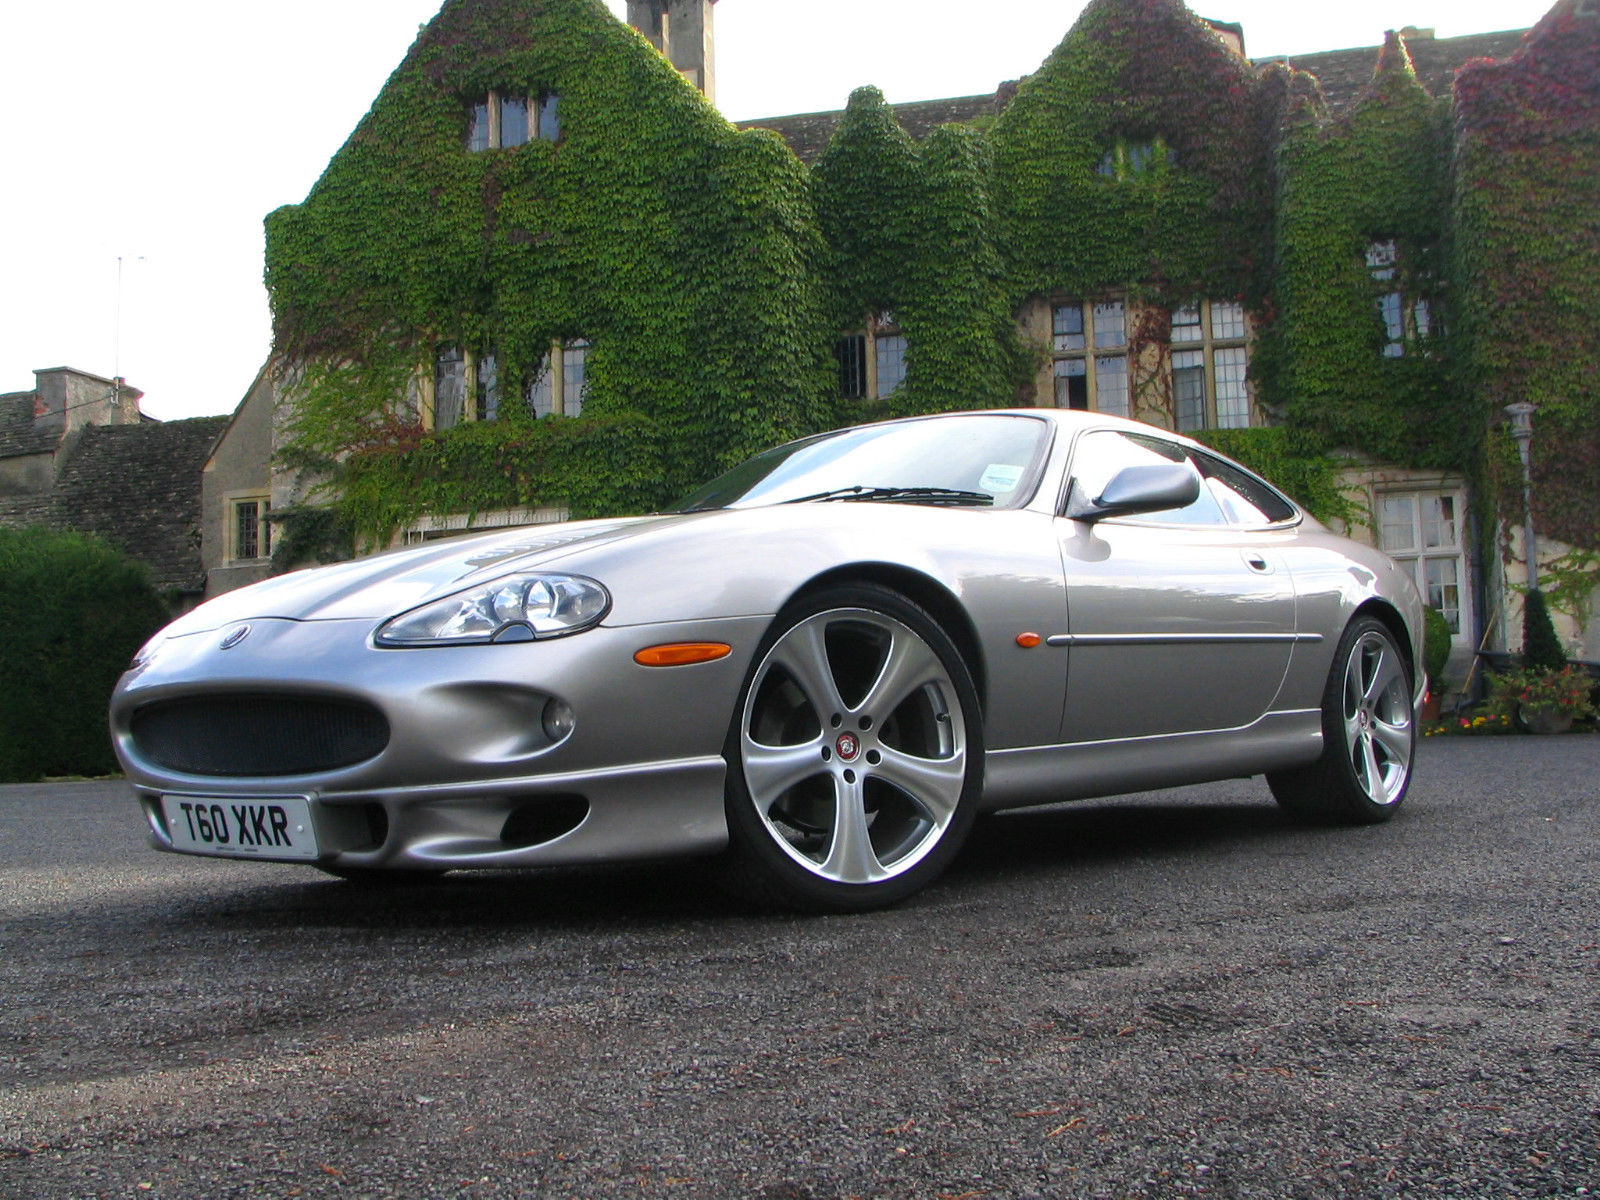 Jaguar Xkr 4 0 Supercharged Coupe V8 For Sale